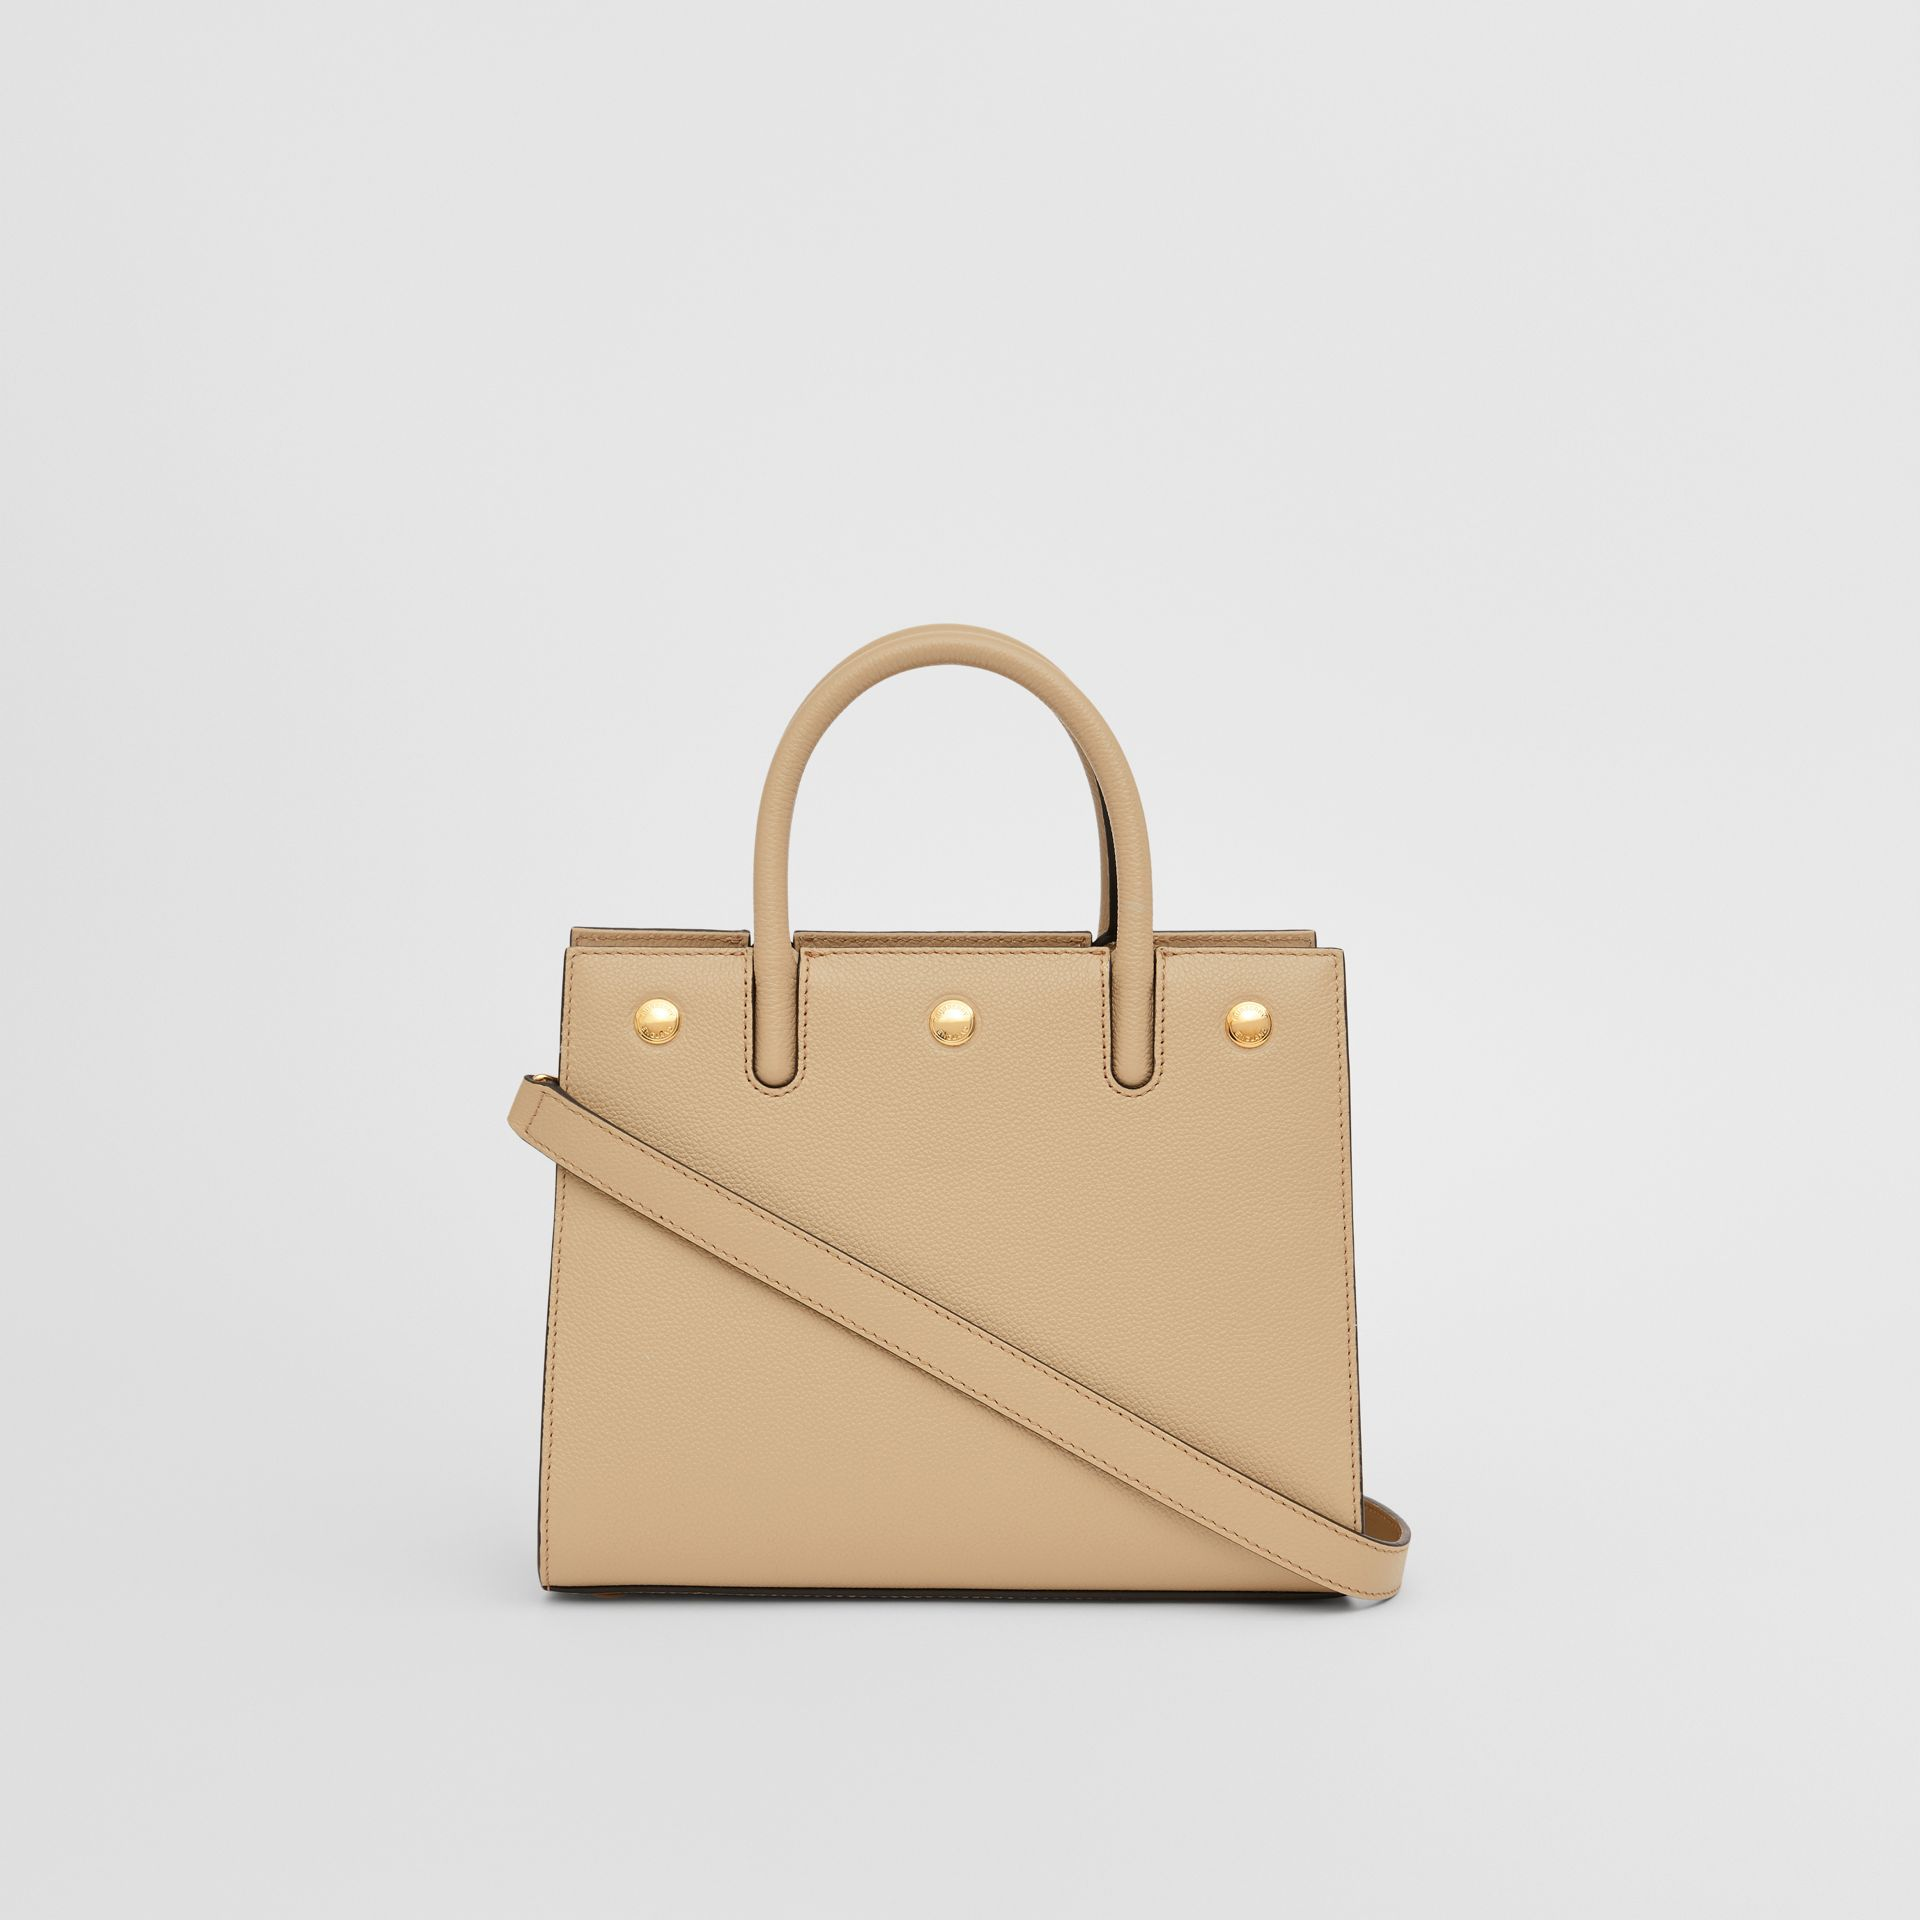 Mini Leather Two-handle Title Bag in Light Beige - Women | Burberry - gallery image 7